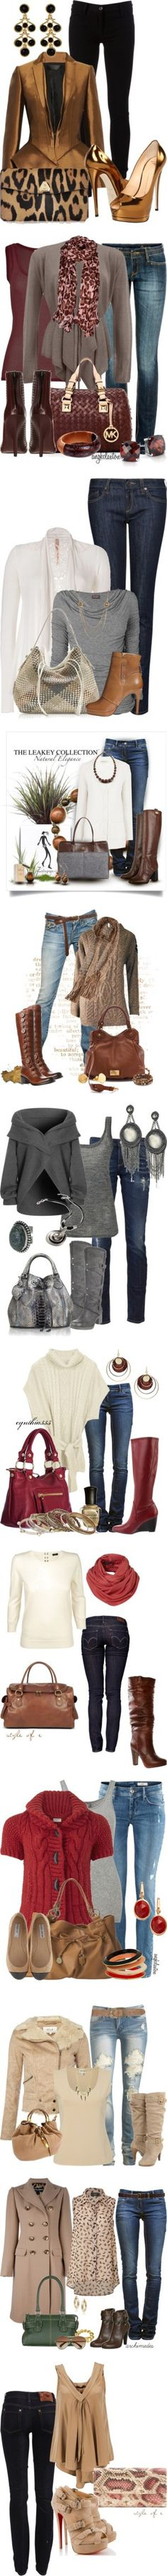 The Skinny Jean Syndrome by esha2001 on Polyvore featuring Ann Demeulemeester, Haider Ackermann, Giuseppe Zanotti, Alexander Wang, Kenneth Jay Lane, American Vintage, MANGO, Fenn Wright Manson, MICHAEL Michael Kors and Blue Nile